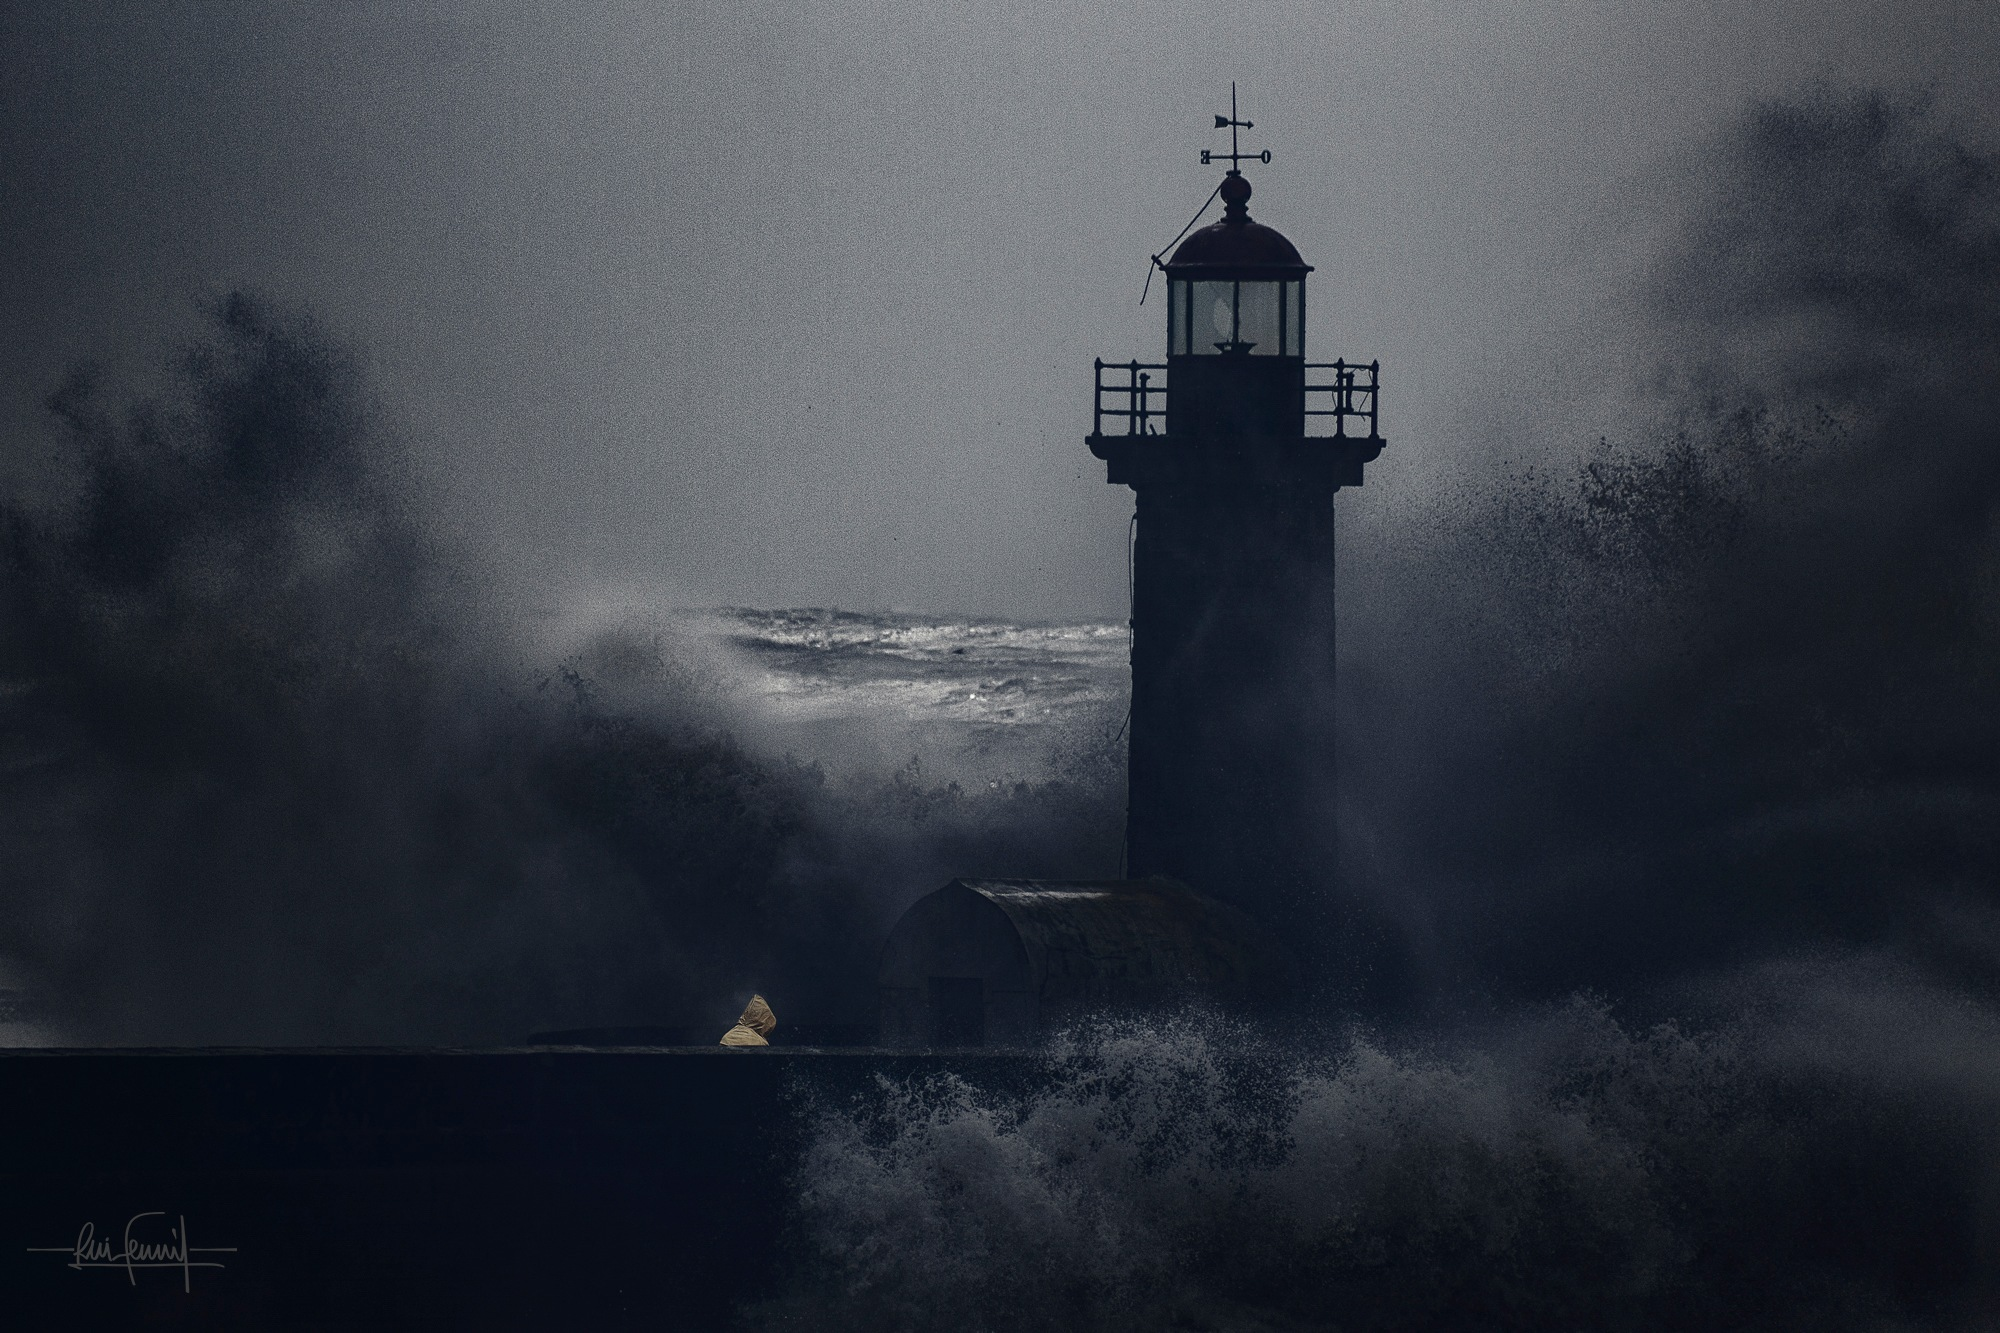 The fearless lighthouse keeper by Rui Ferreira